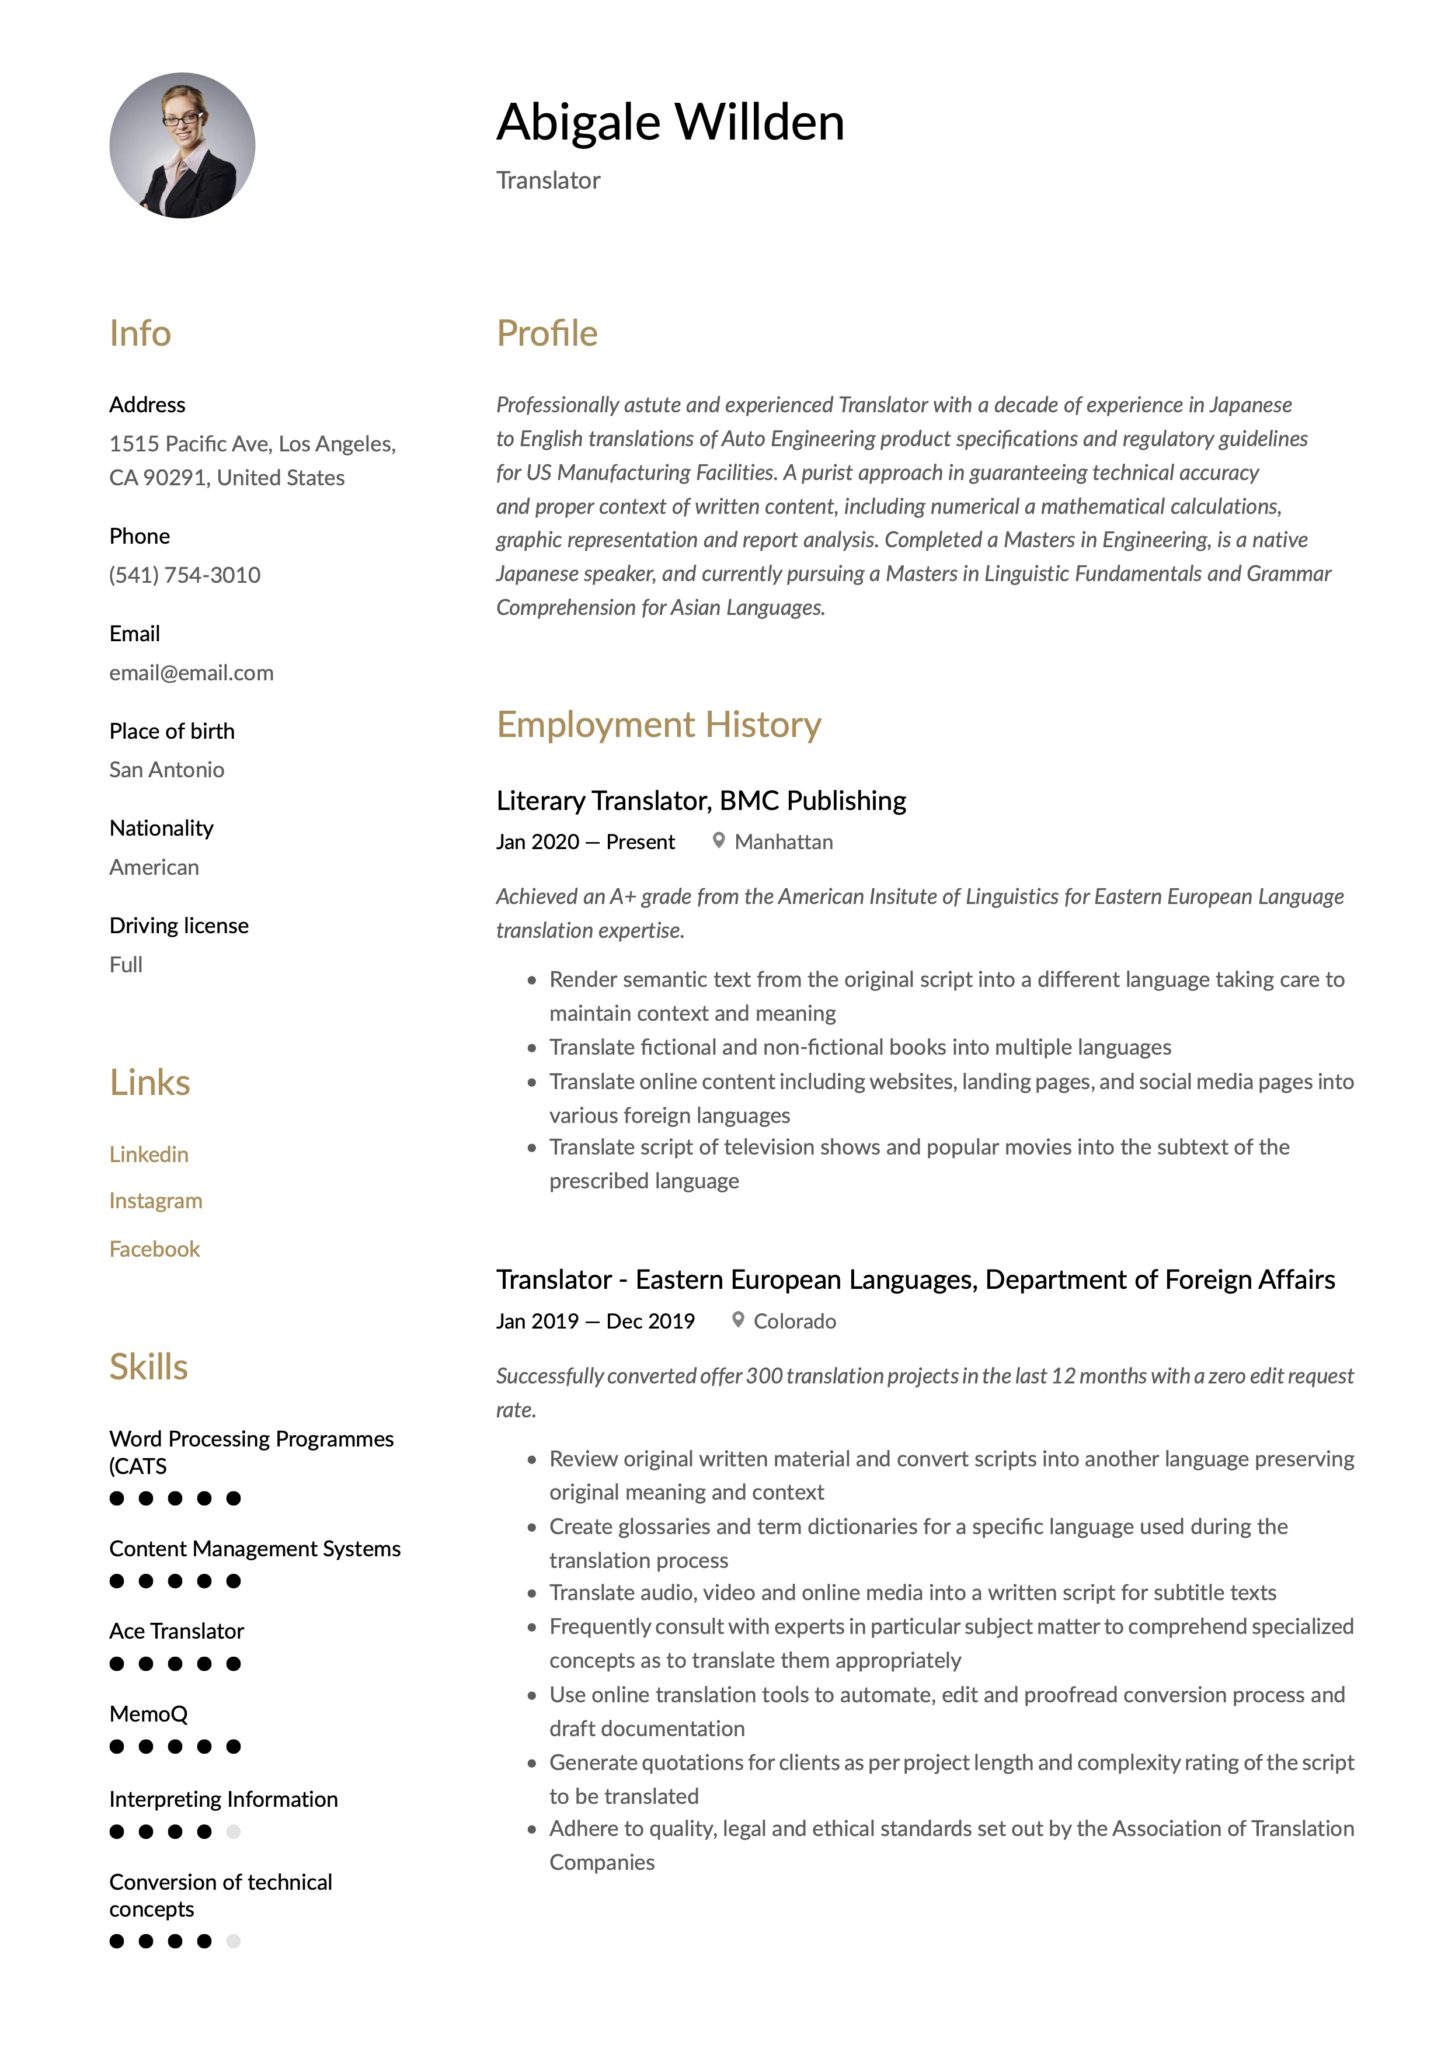 translator resume writing guide templates technical scaled home remodeling account Resume Technical Translator Resume